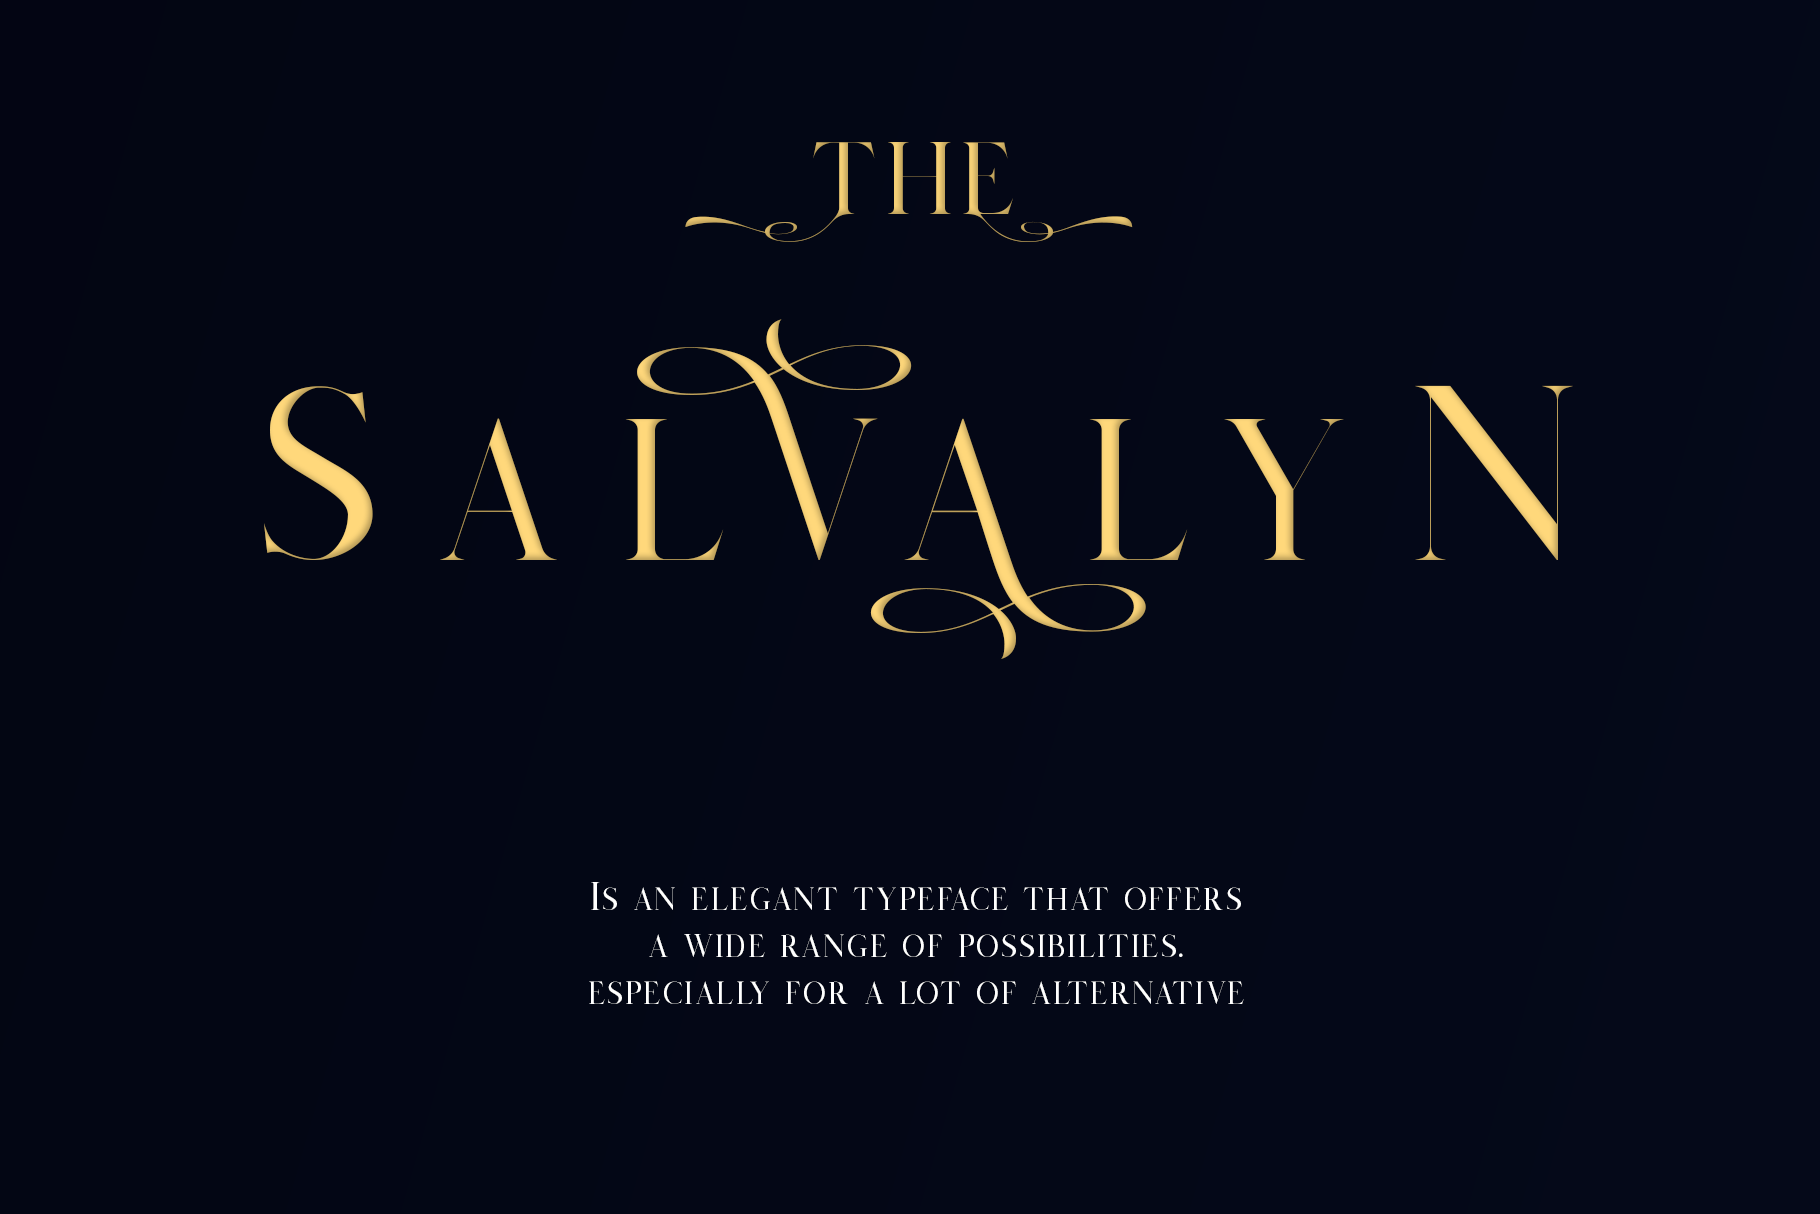 Salvalyn - Stylistic Serif Font example image 5